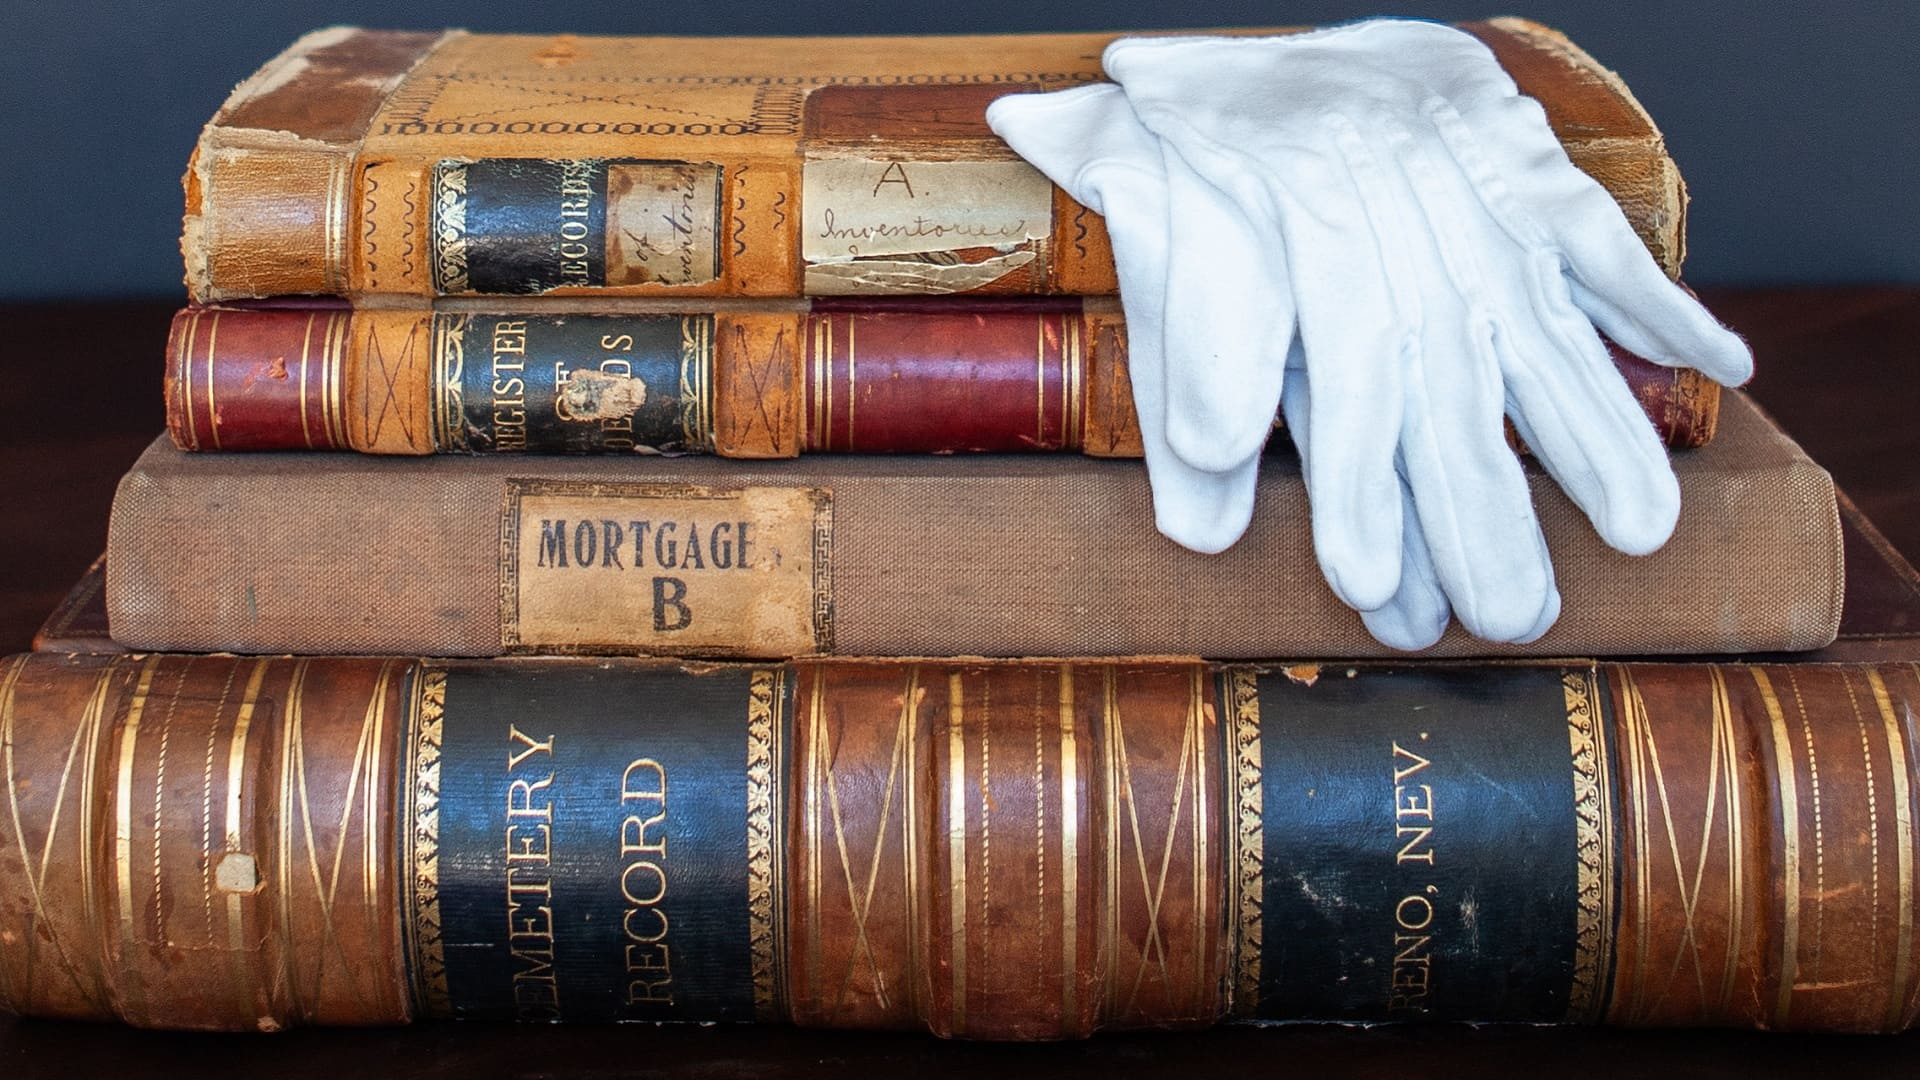 White gloves sit atop a stack of old books and ledgers from Reno's history